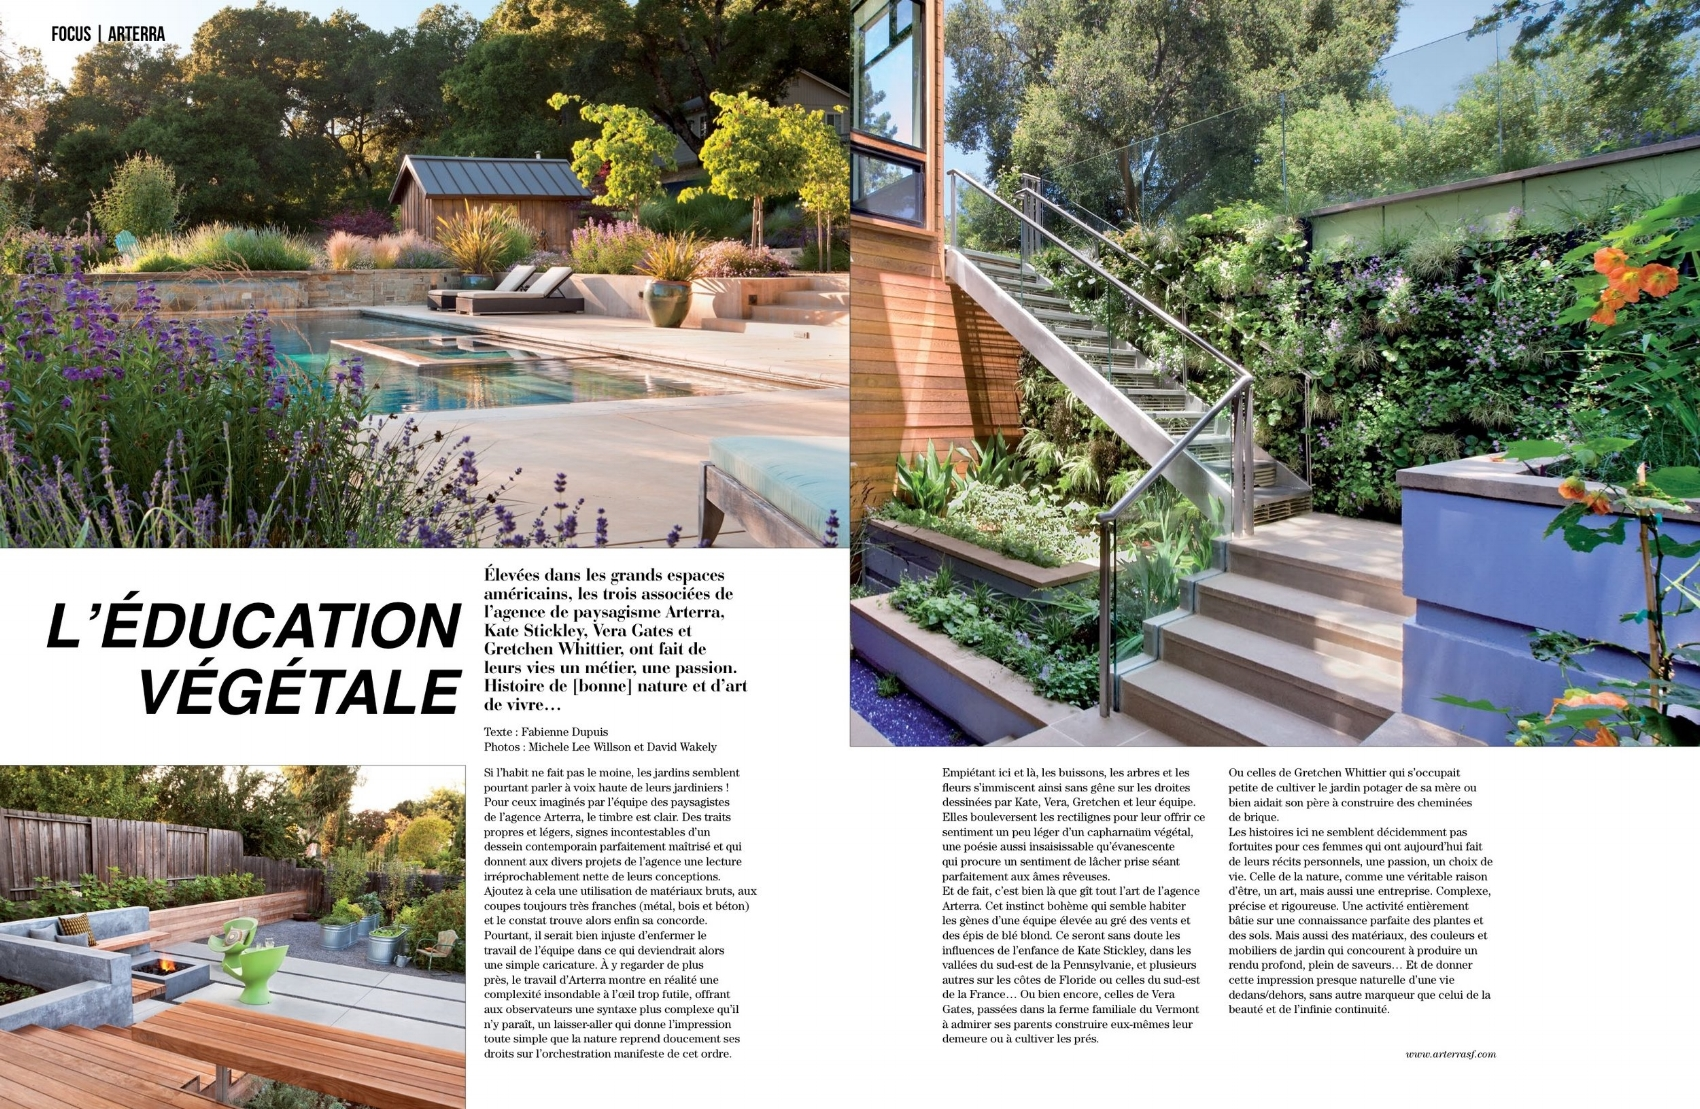 Magazine spread showing a pool, light well with living wall and production garden, with text about the studio in French